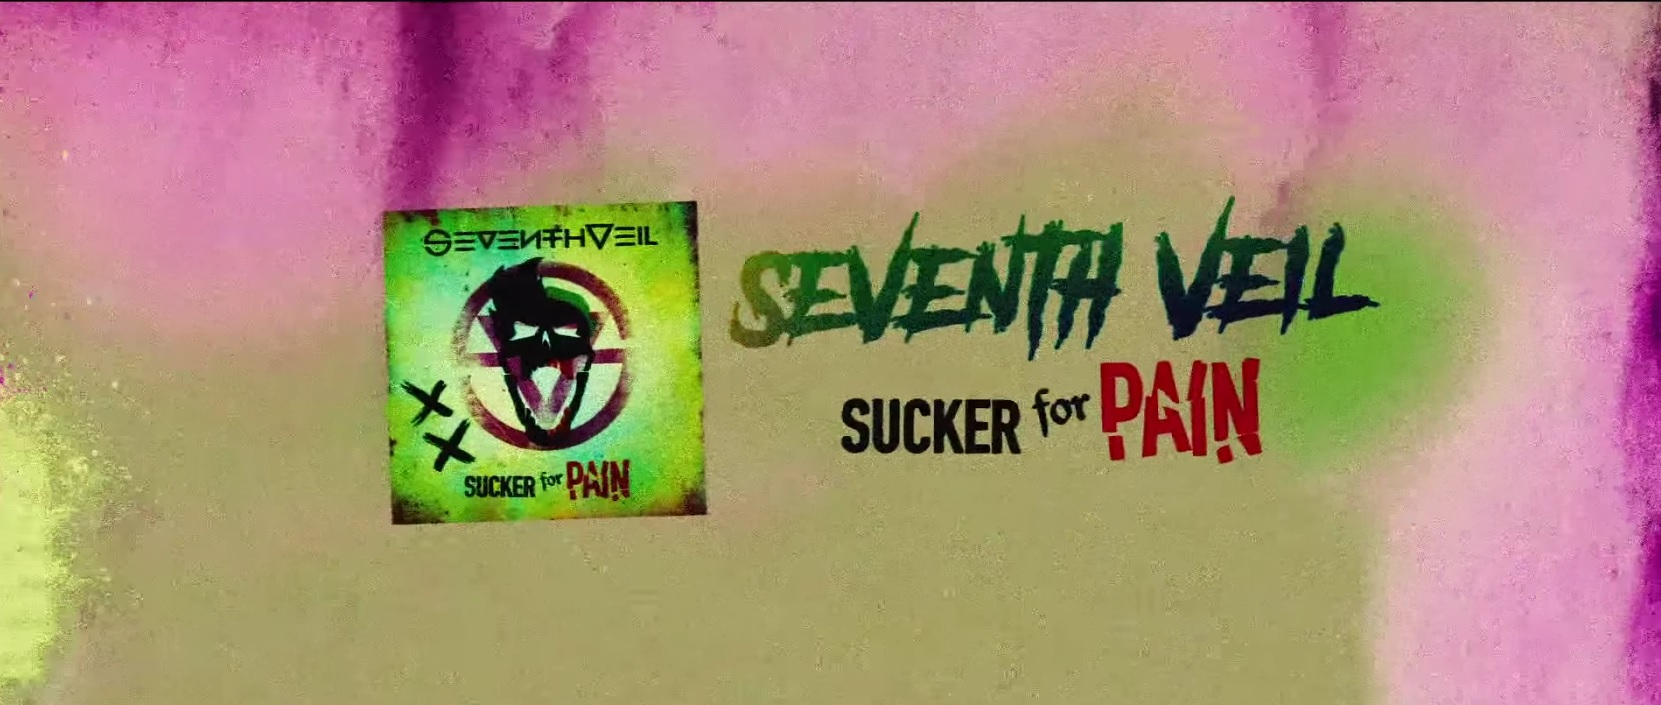 seventh-veil-sucker-for-pain